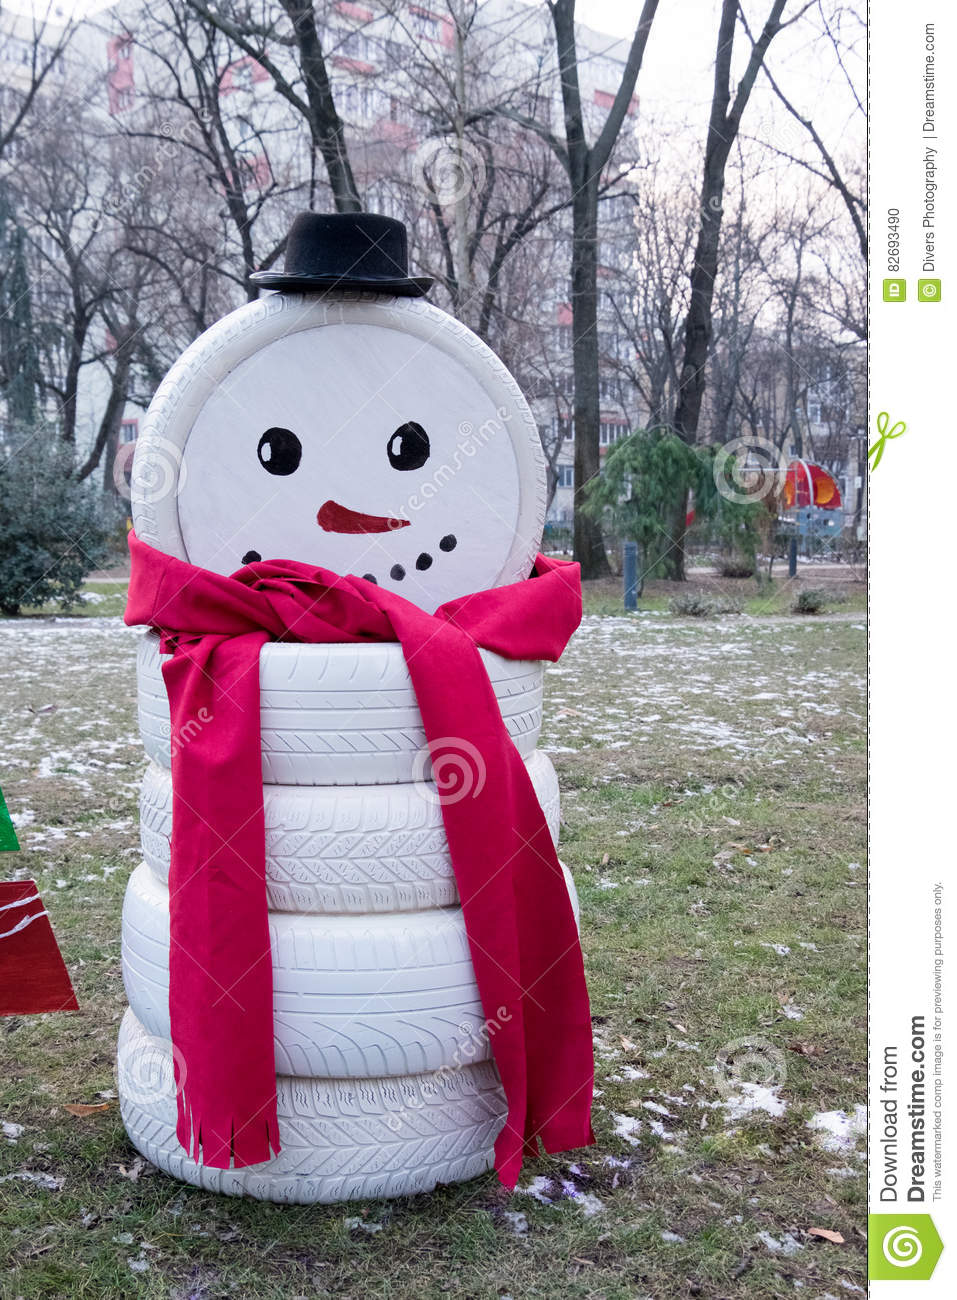 Snowman made by tire car stock photo image of tires for Snowmen made from tires